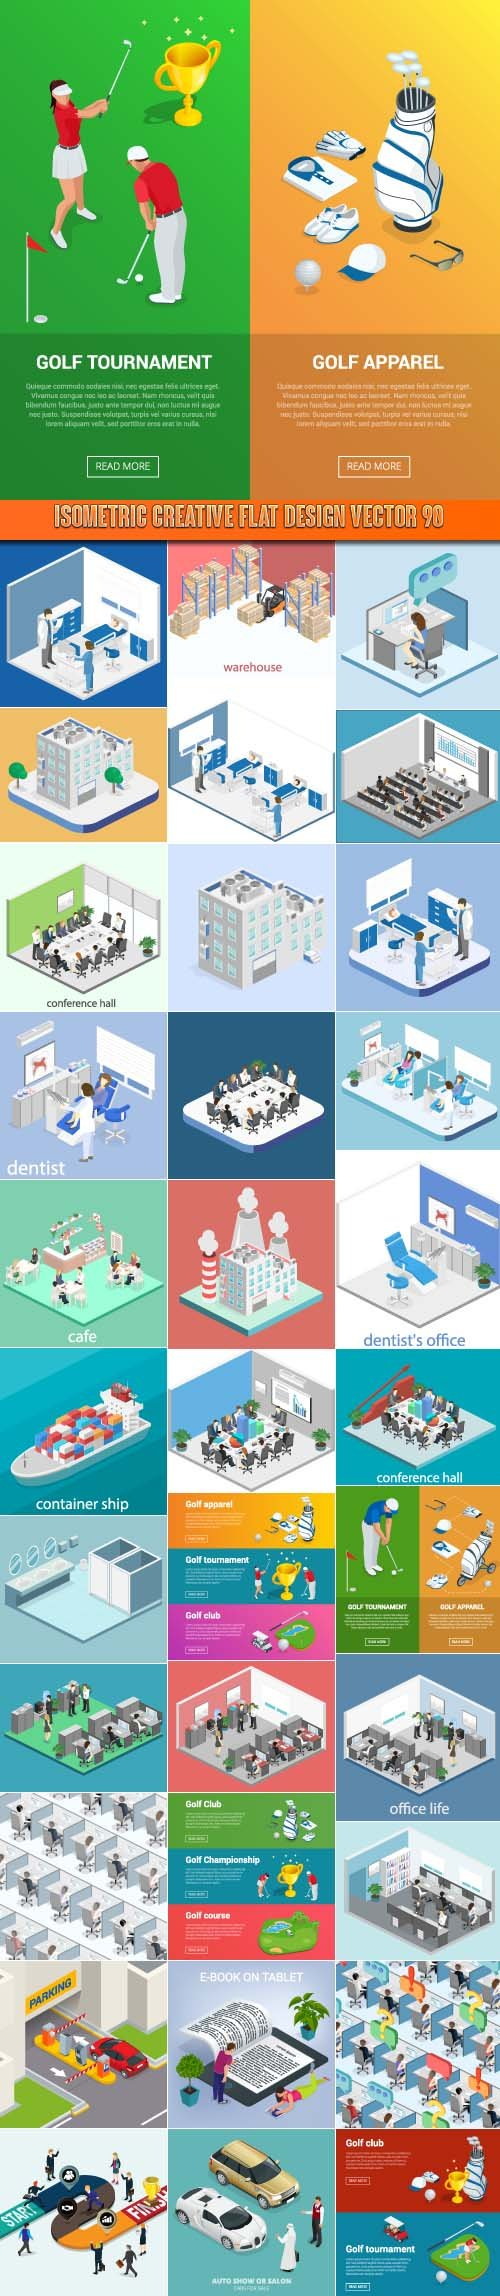 Isometric creative flat design vector 90